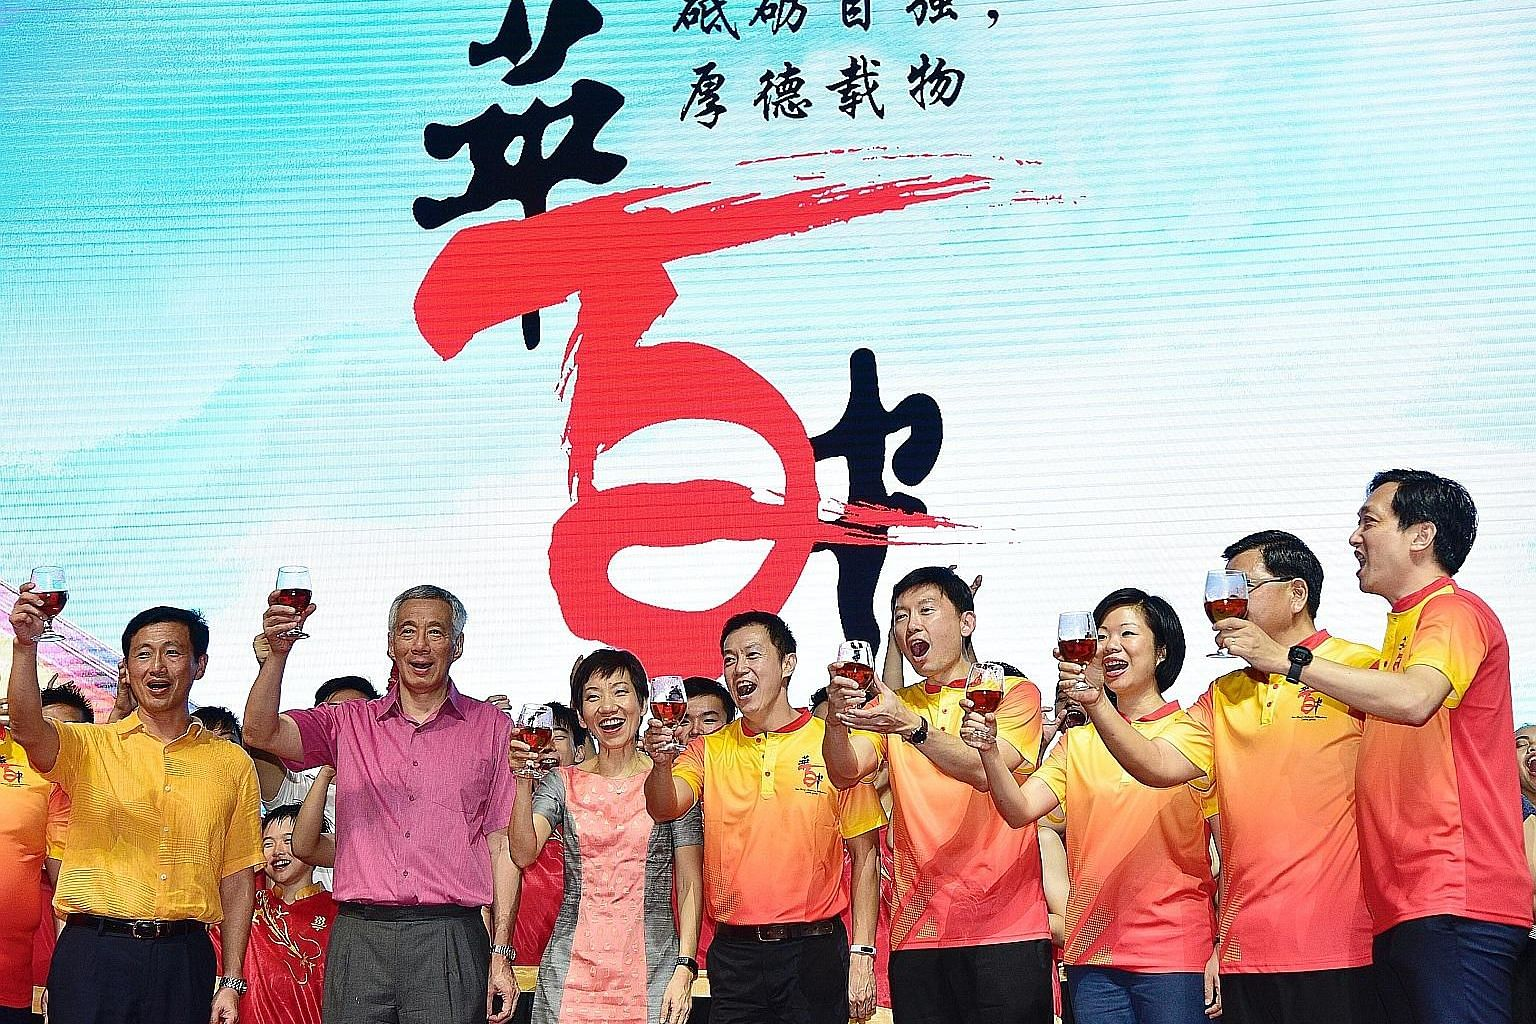 Prime Minister Lee Hsien Loong raising a ceremonial toast at Hwa Chong Institution's 100th anniversary gala dinner yesterday. With him were (from far left) Minister for Education Ong Ye Kung; Minister for Culture, Community and Youth Grace Fu; MP Lim